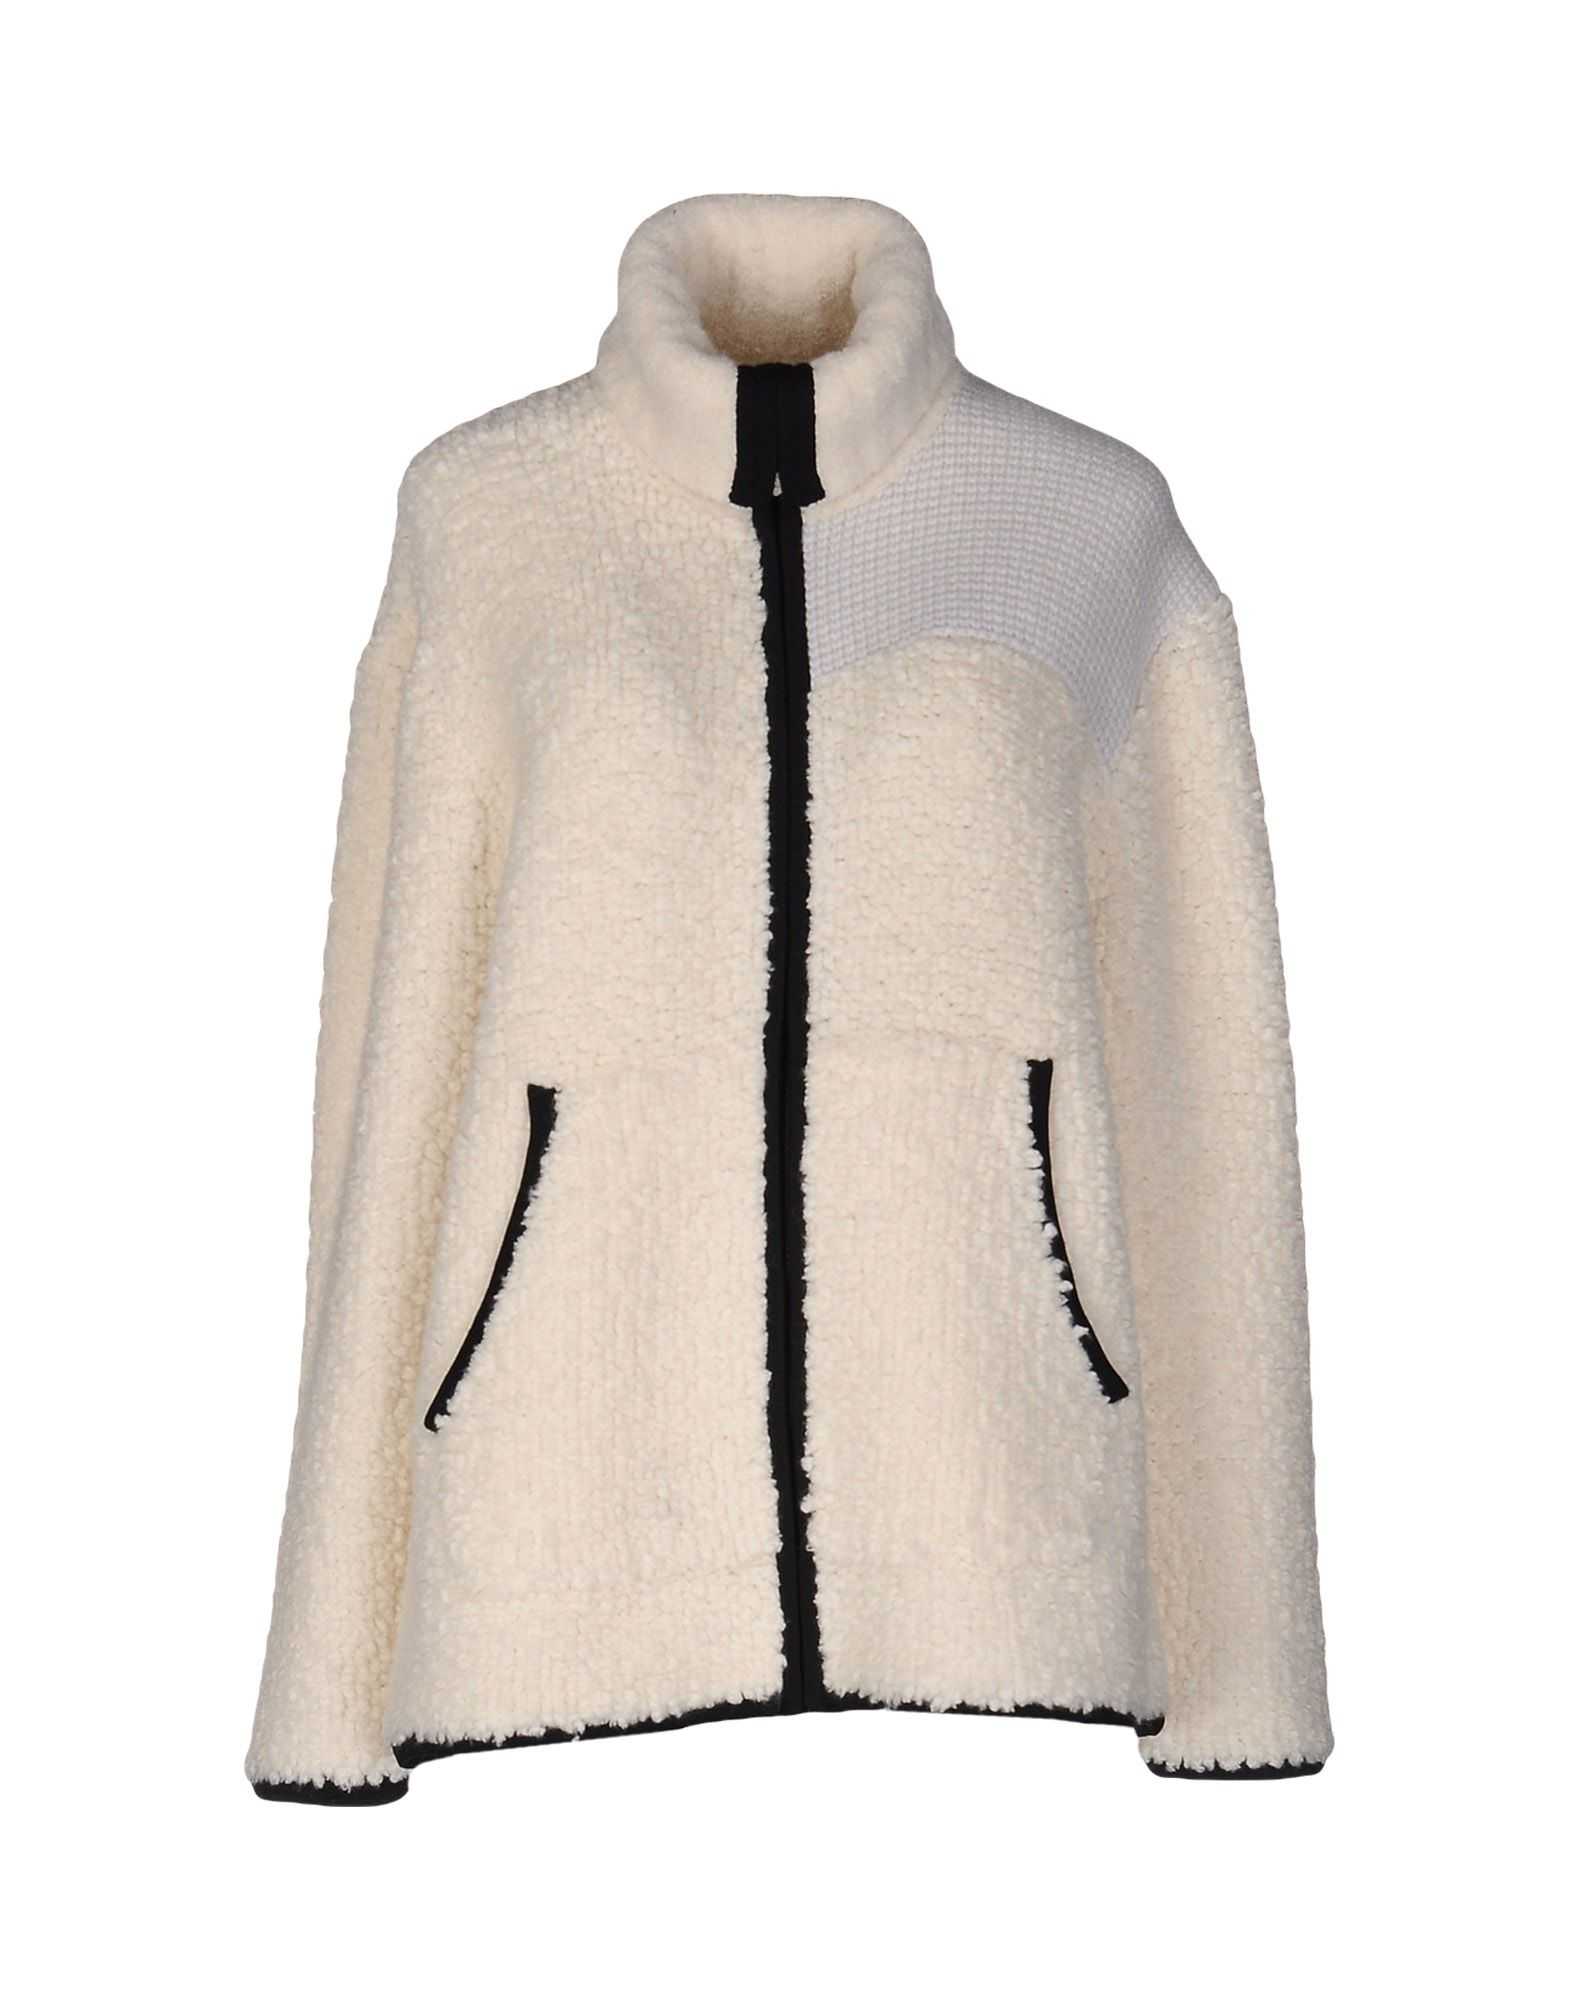 t by alexander wang cardigan in white lyst. Black Bedroom Furniture Sets. Home Design Ideas